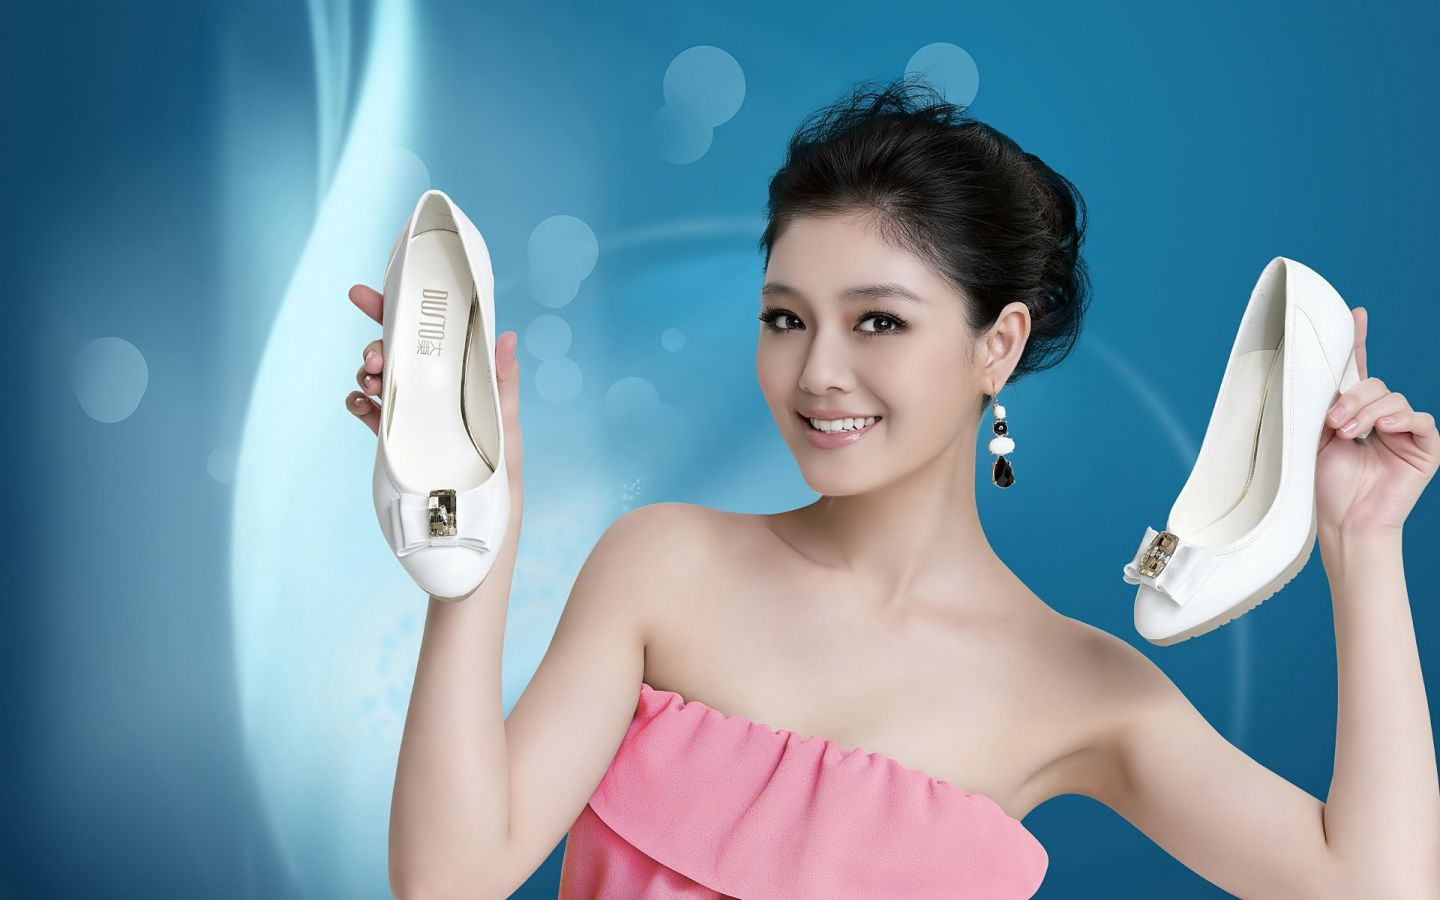 1440x900 - Barbie Hsu Wallpapers 21